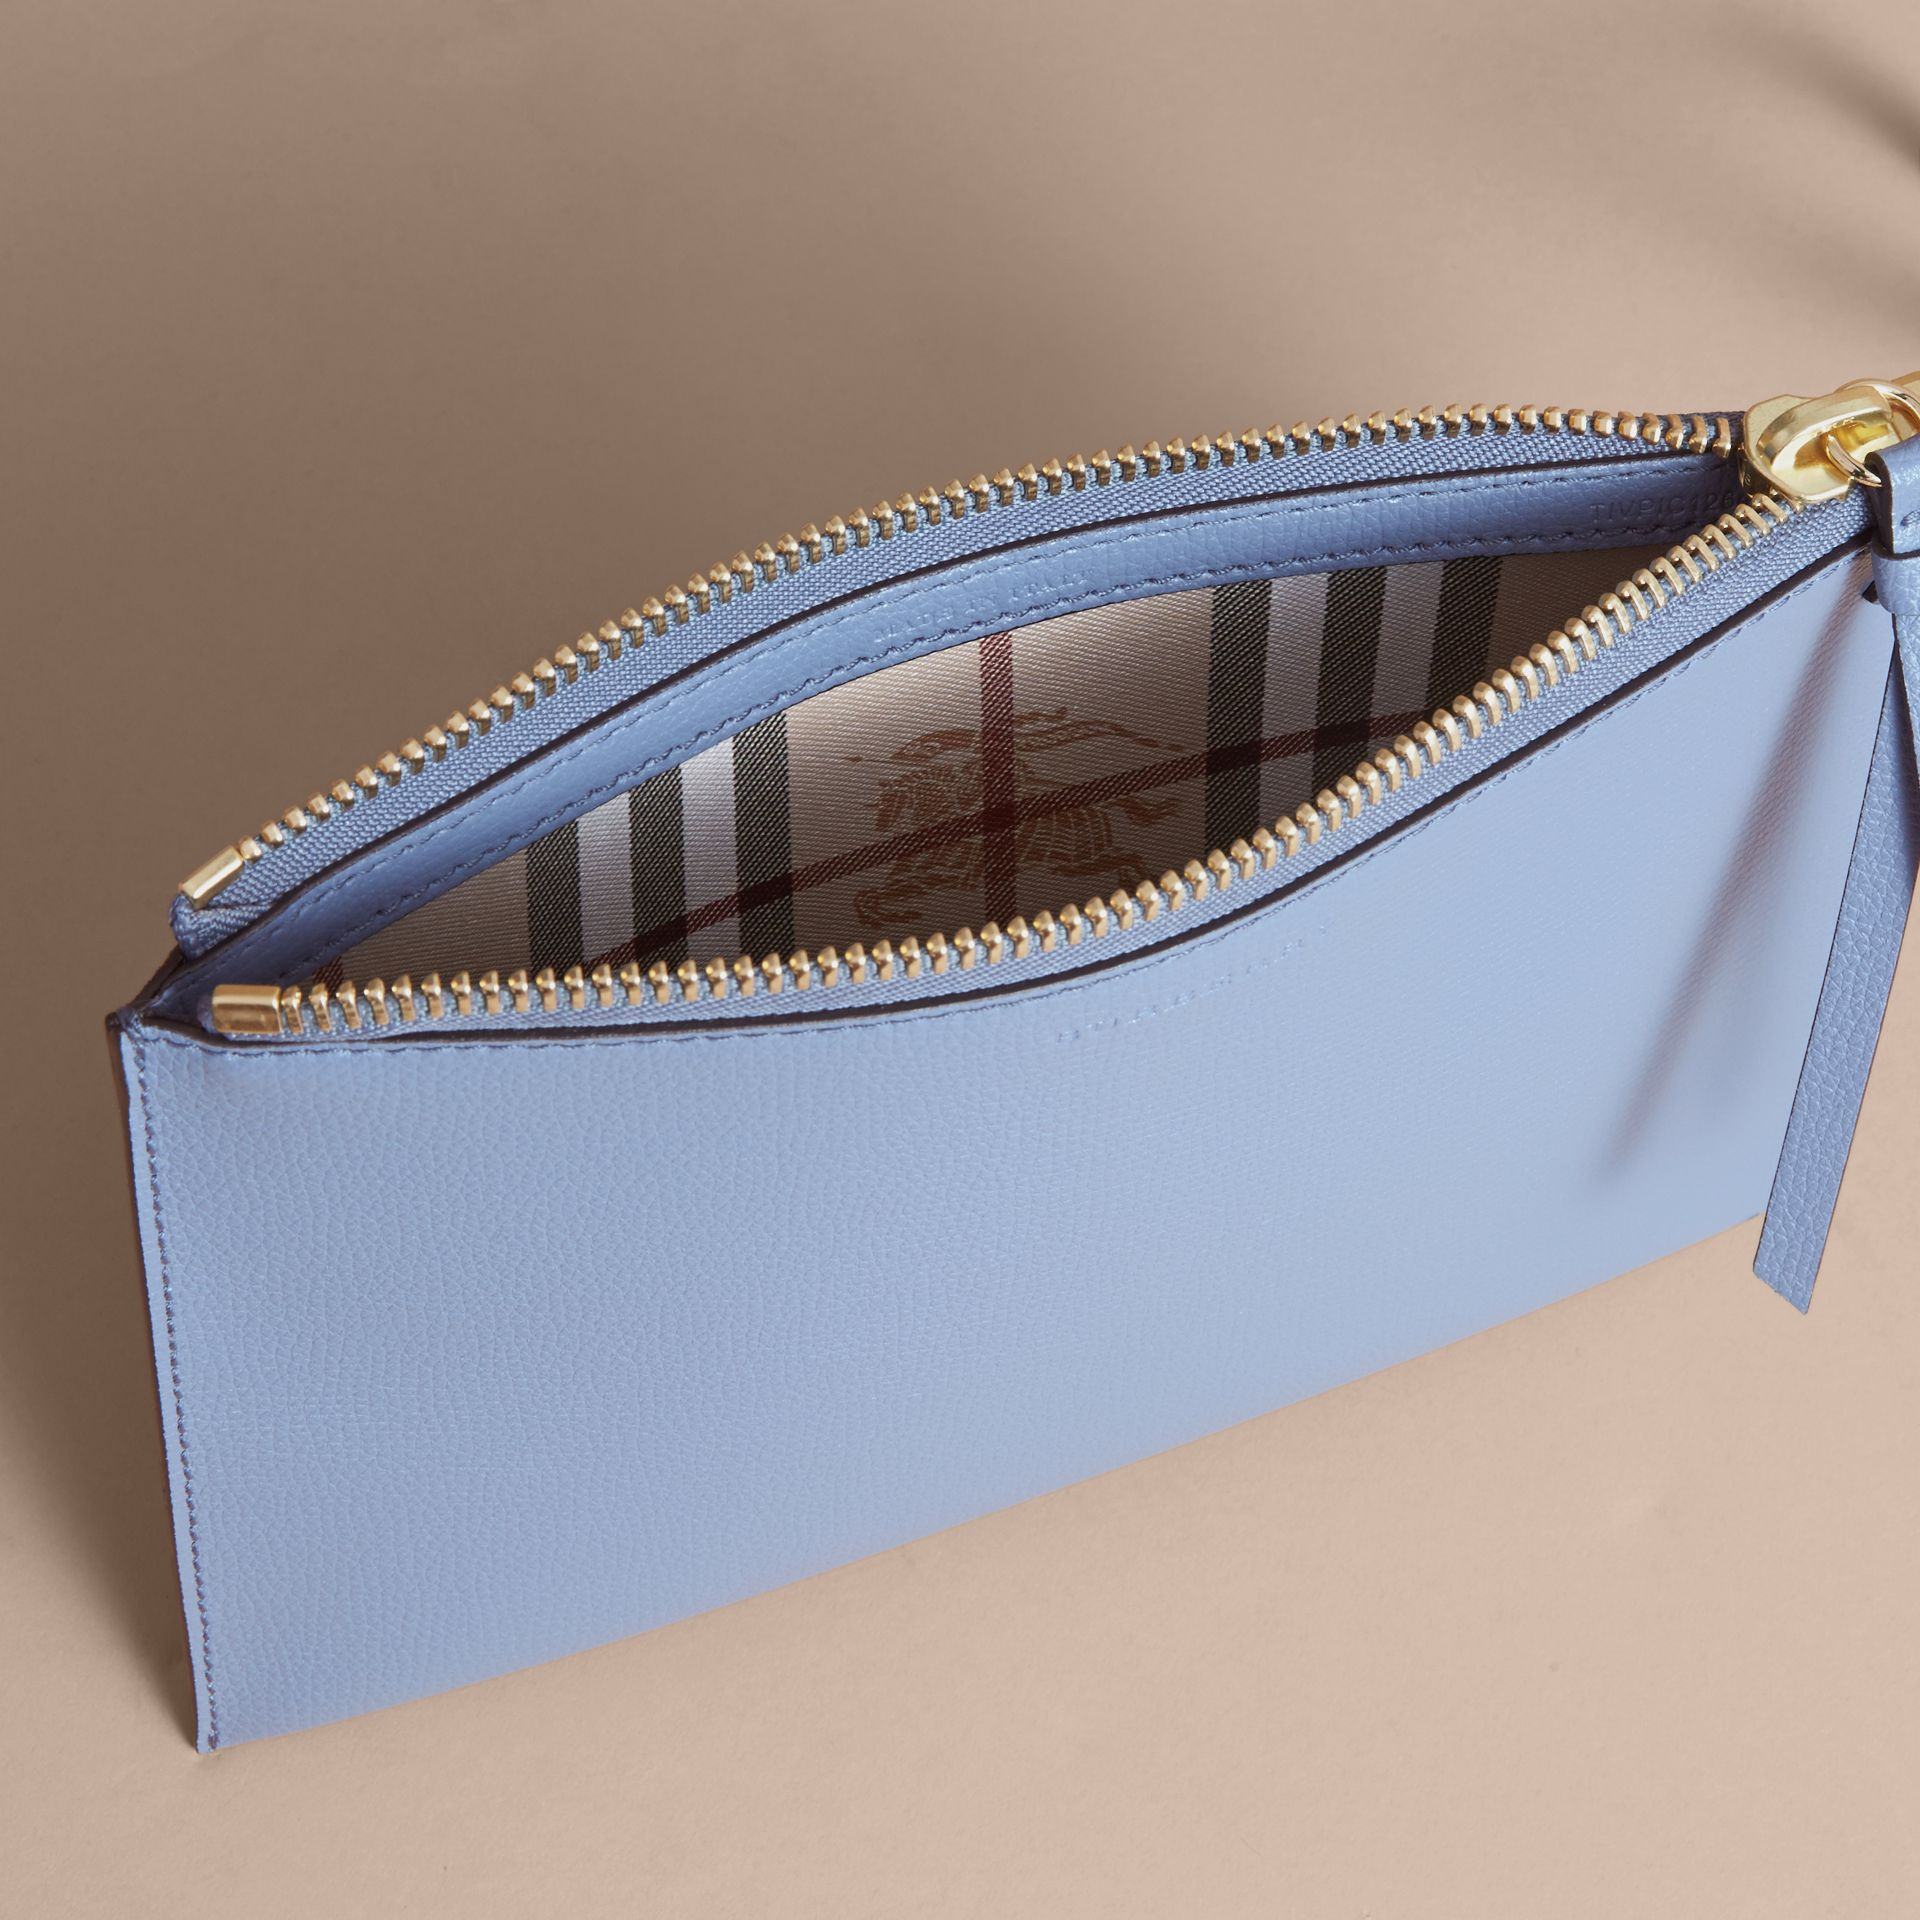 Haymarket Check and Leather Pouch in Slate Blue - Women | Burberry Australia - gallery image 5